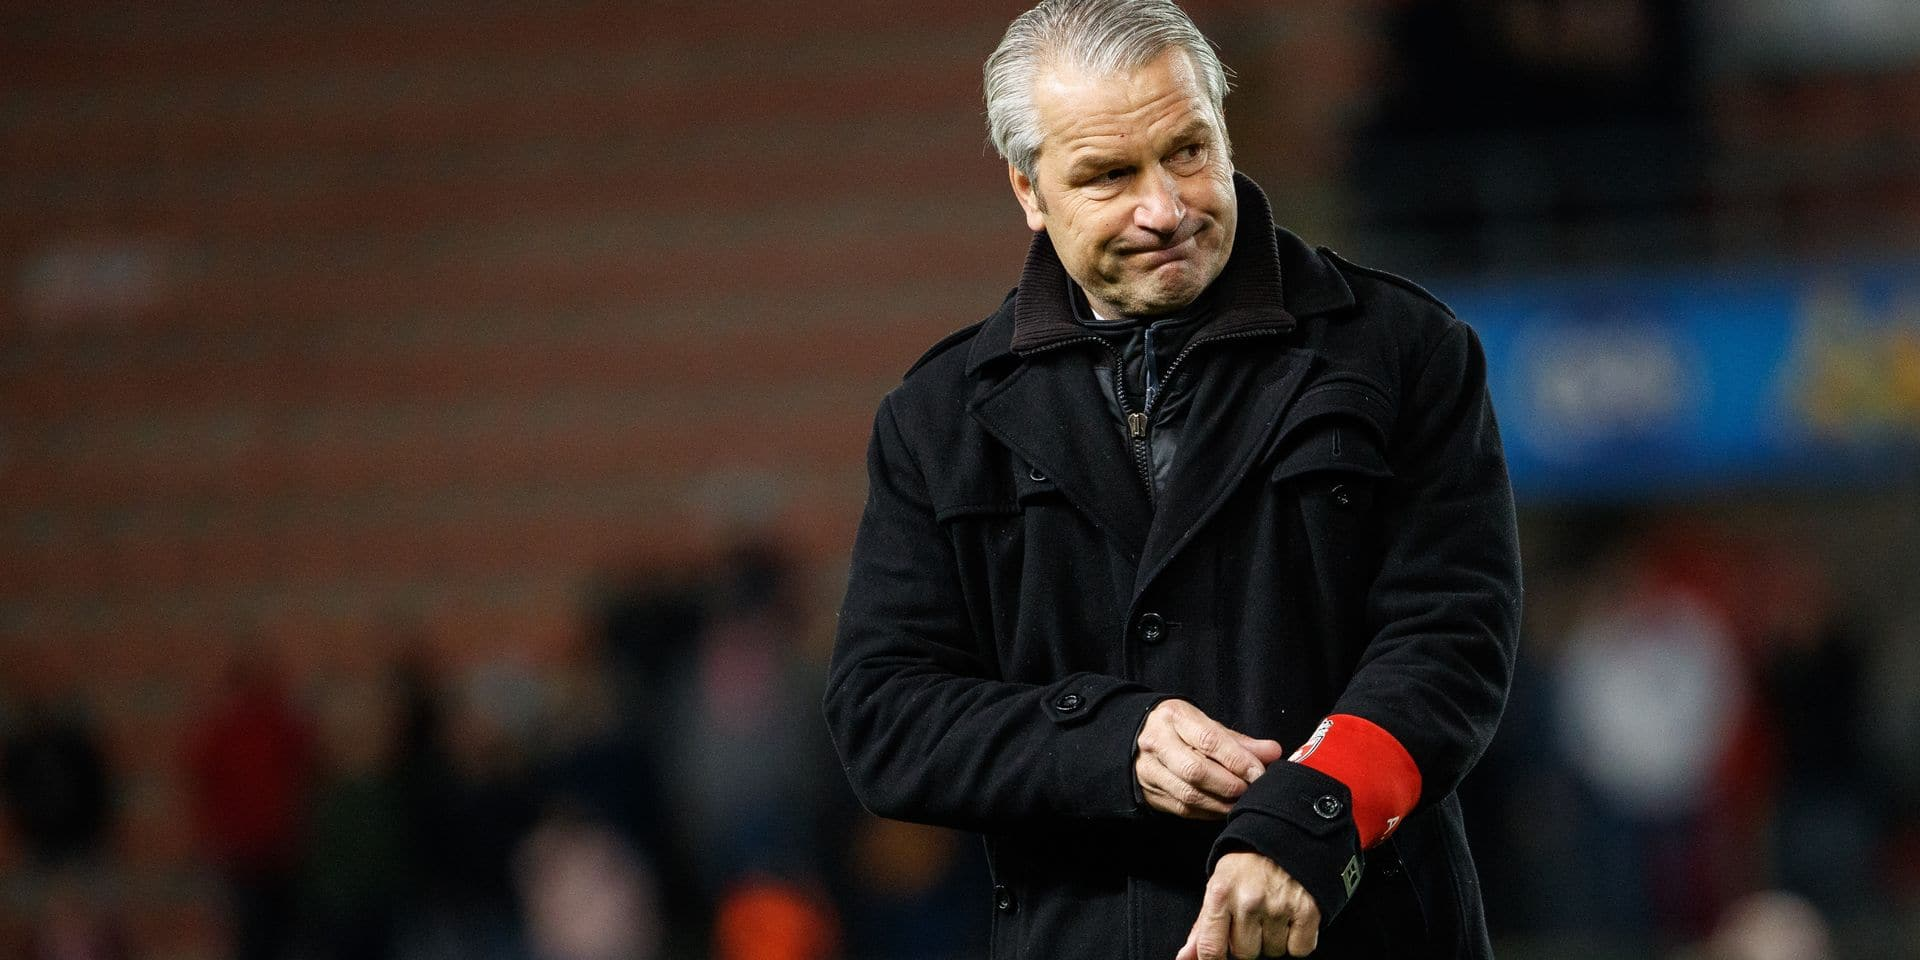 Mouscron's head coach Bernd Storck pictured after a soccer game between Royal Excel Mouscron and Zulte Waregem, Sunday 05 May 2019 in Mouscron, on day 7 (out of 10) of the Play-off 2B of the 'Jupiler Pro League' Belgian soccer championship. BELGA PHOTO KURT DESPLENTER